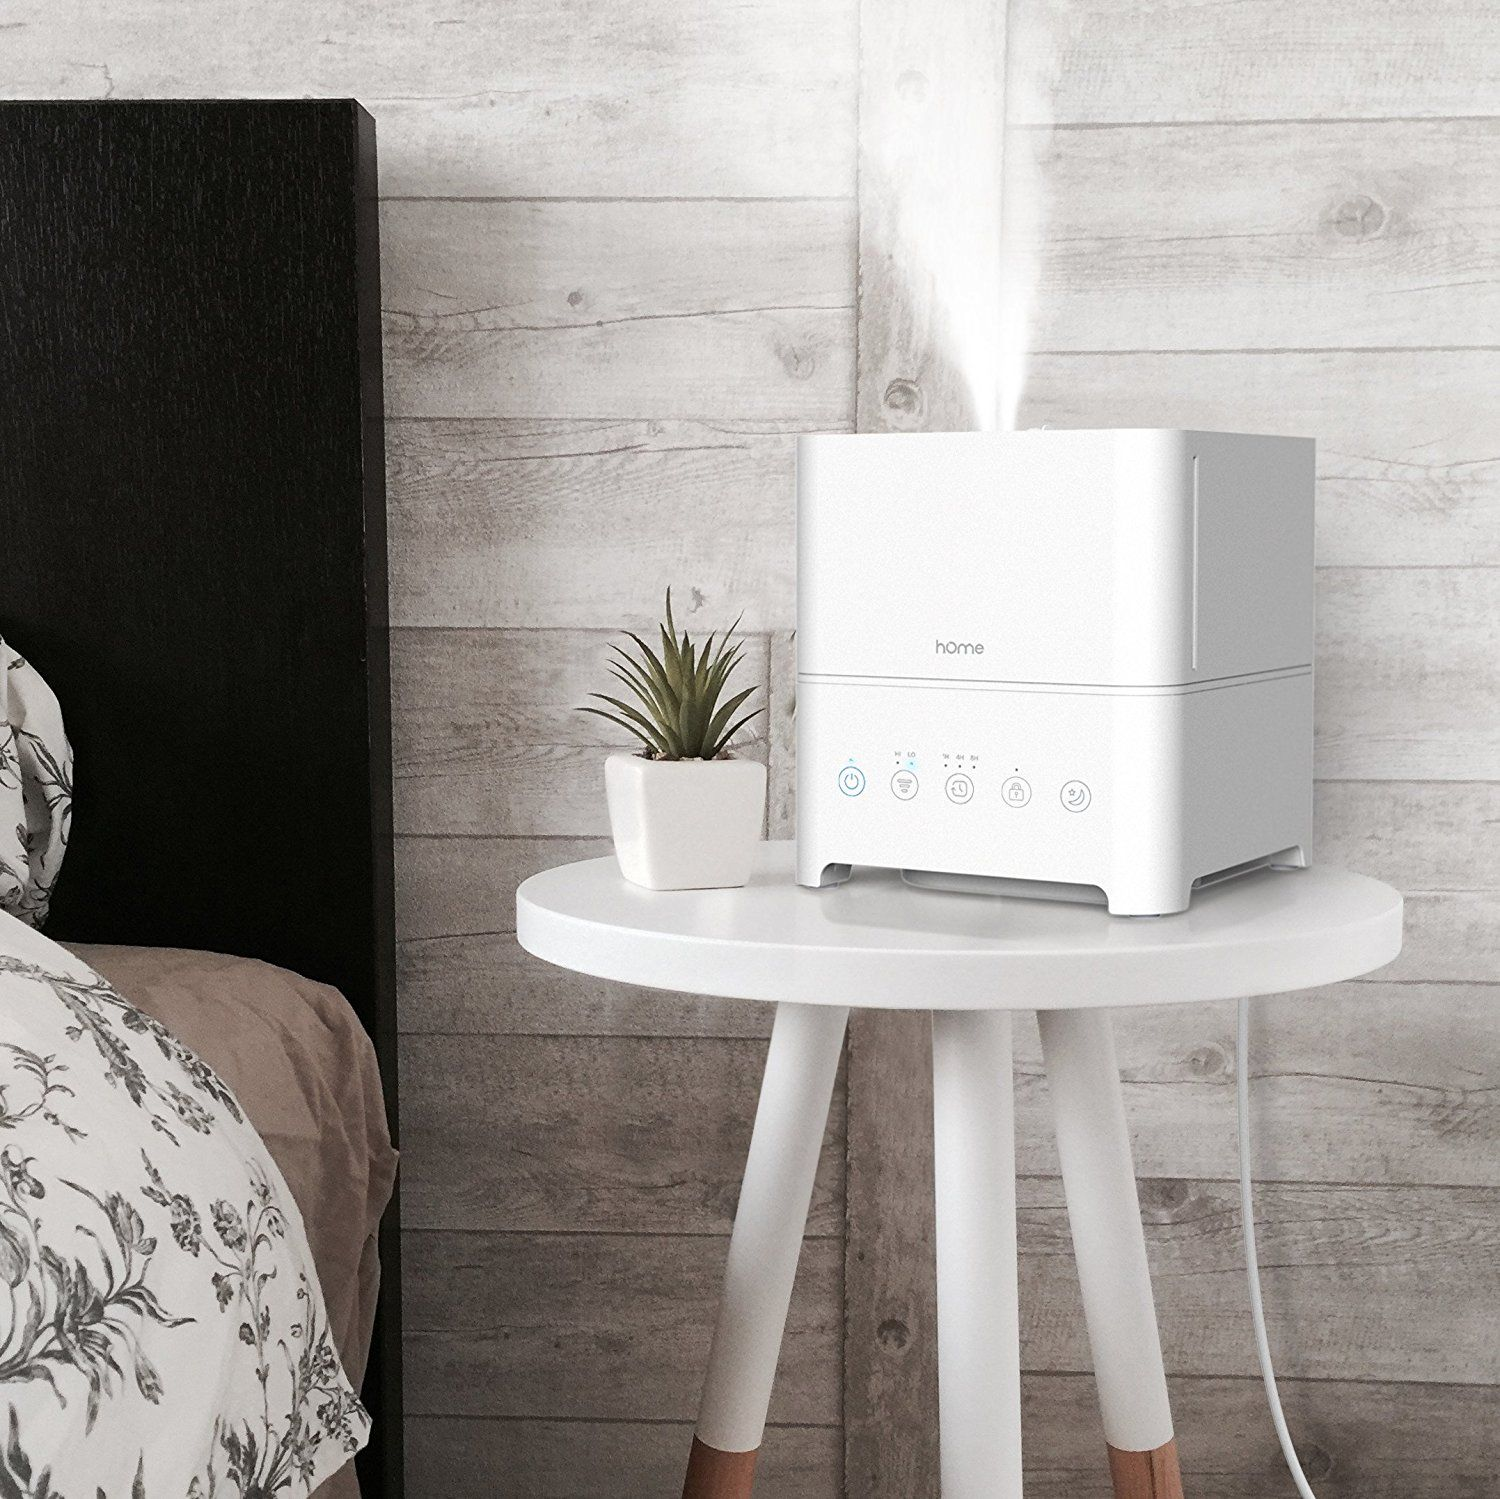 Best Warm Air Humidifier With Reviews Find Everything